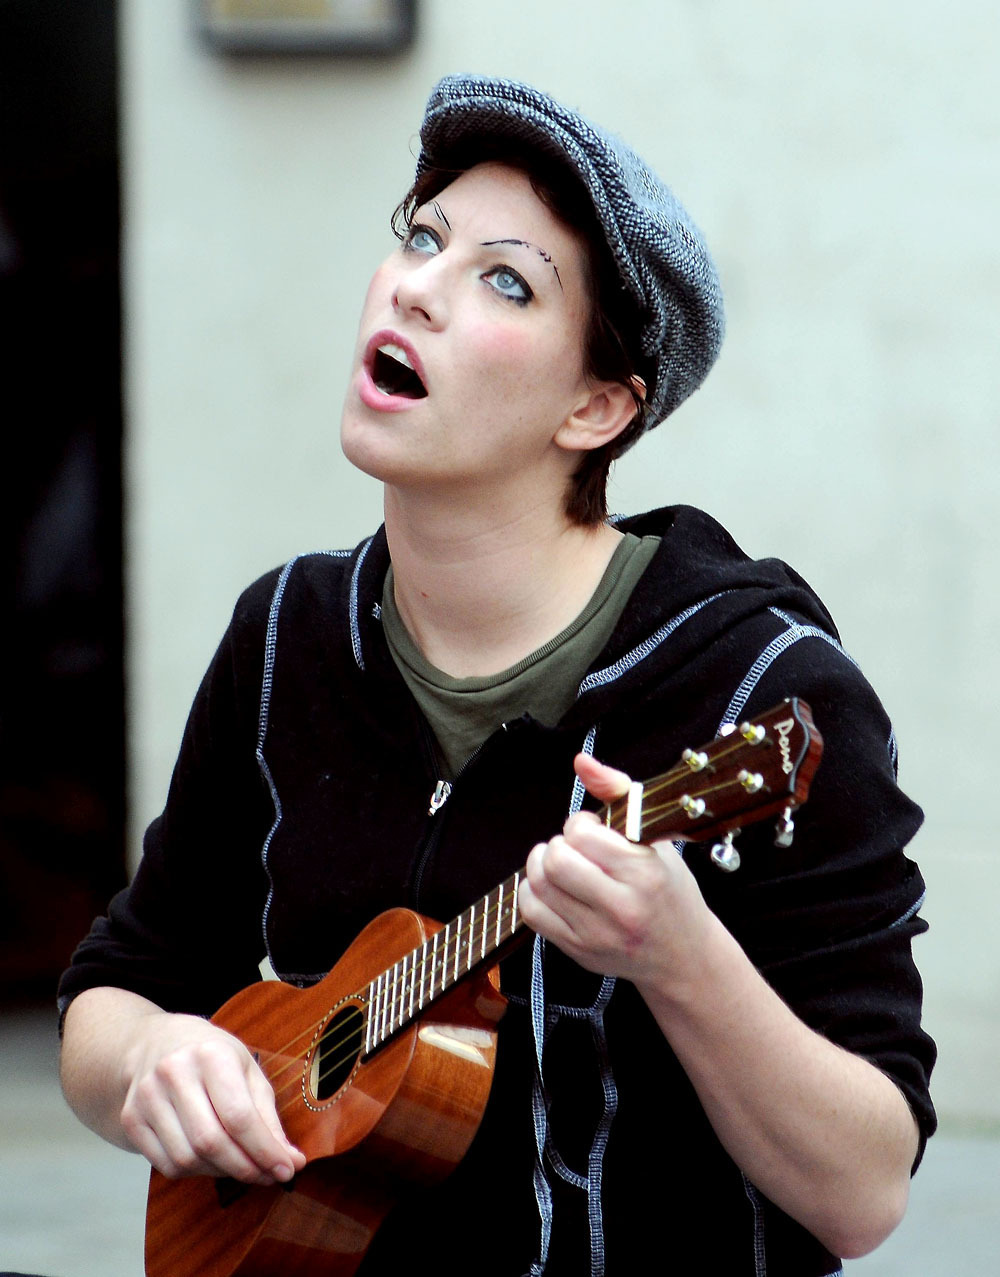 **Exclusive** Amanda Palmer of 'The Dresden Dolls' plays an intimate outdoor gig in Meeting House Square in Temple Bar Dublin, Ireland - 26.09.08.  Credit: (Mandatory): WENN